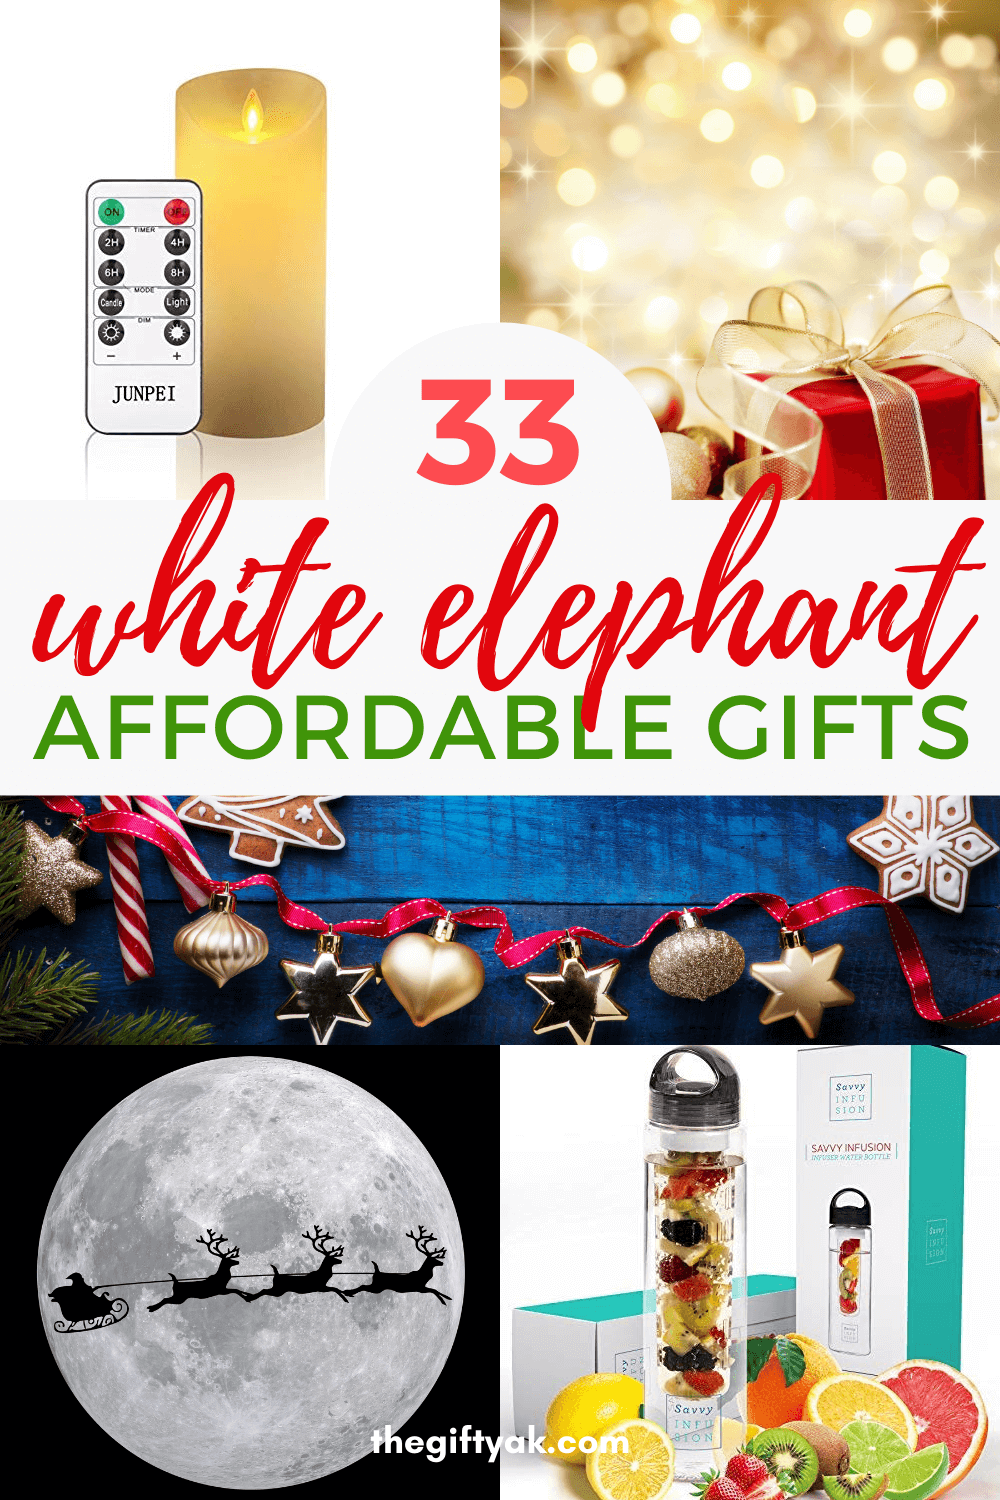 33 Affordable White Elephant Gifts Yankee Swap Gifts Dirty Santa Gifts Ultimate List Under $20